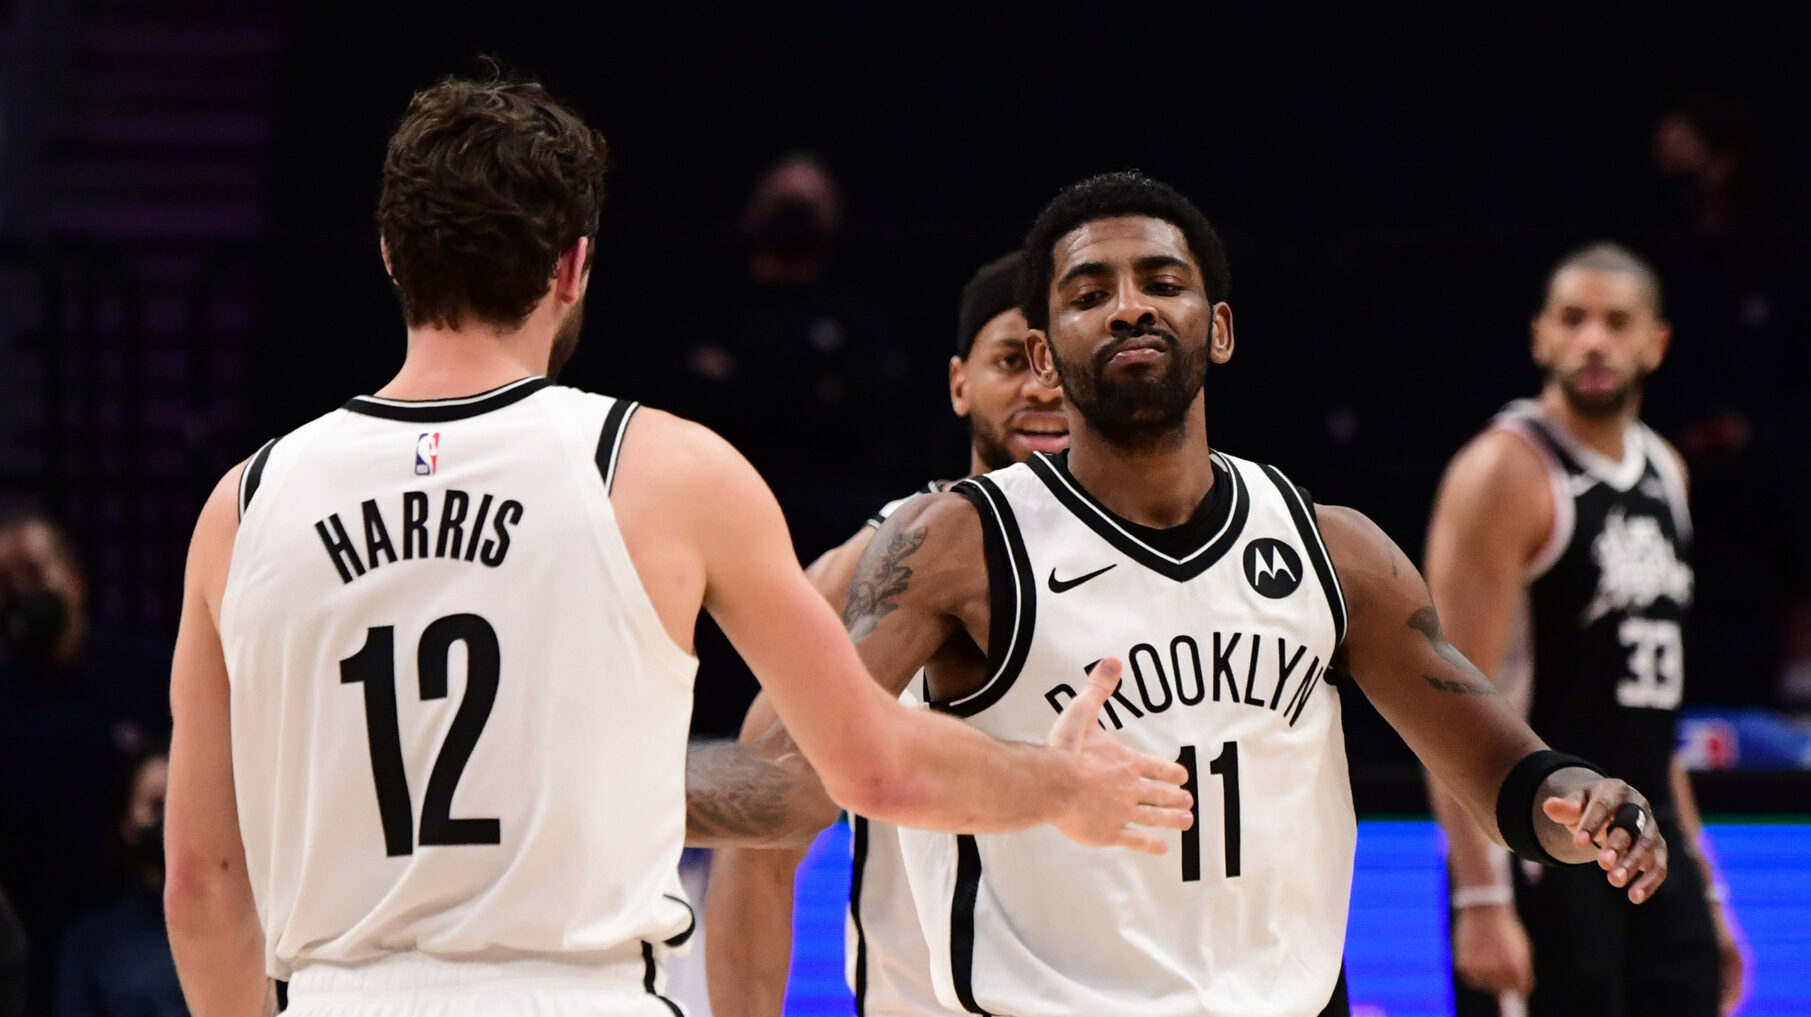 10 takeaways from the Nets' win against the Clippers